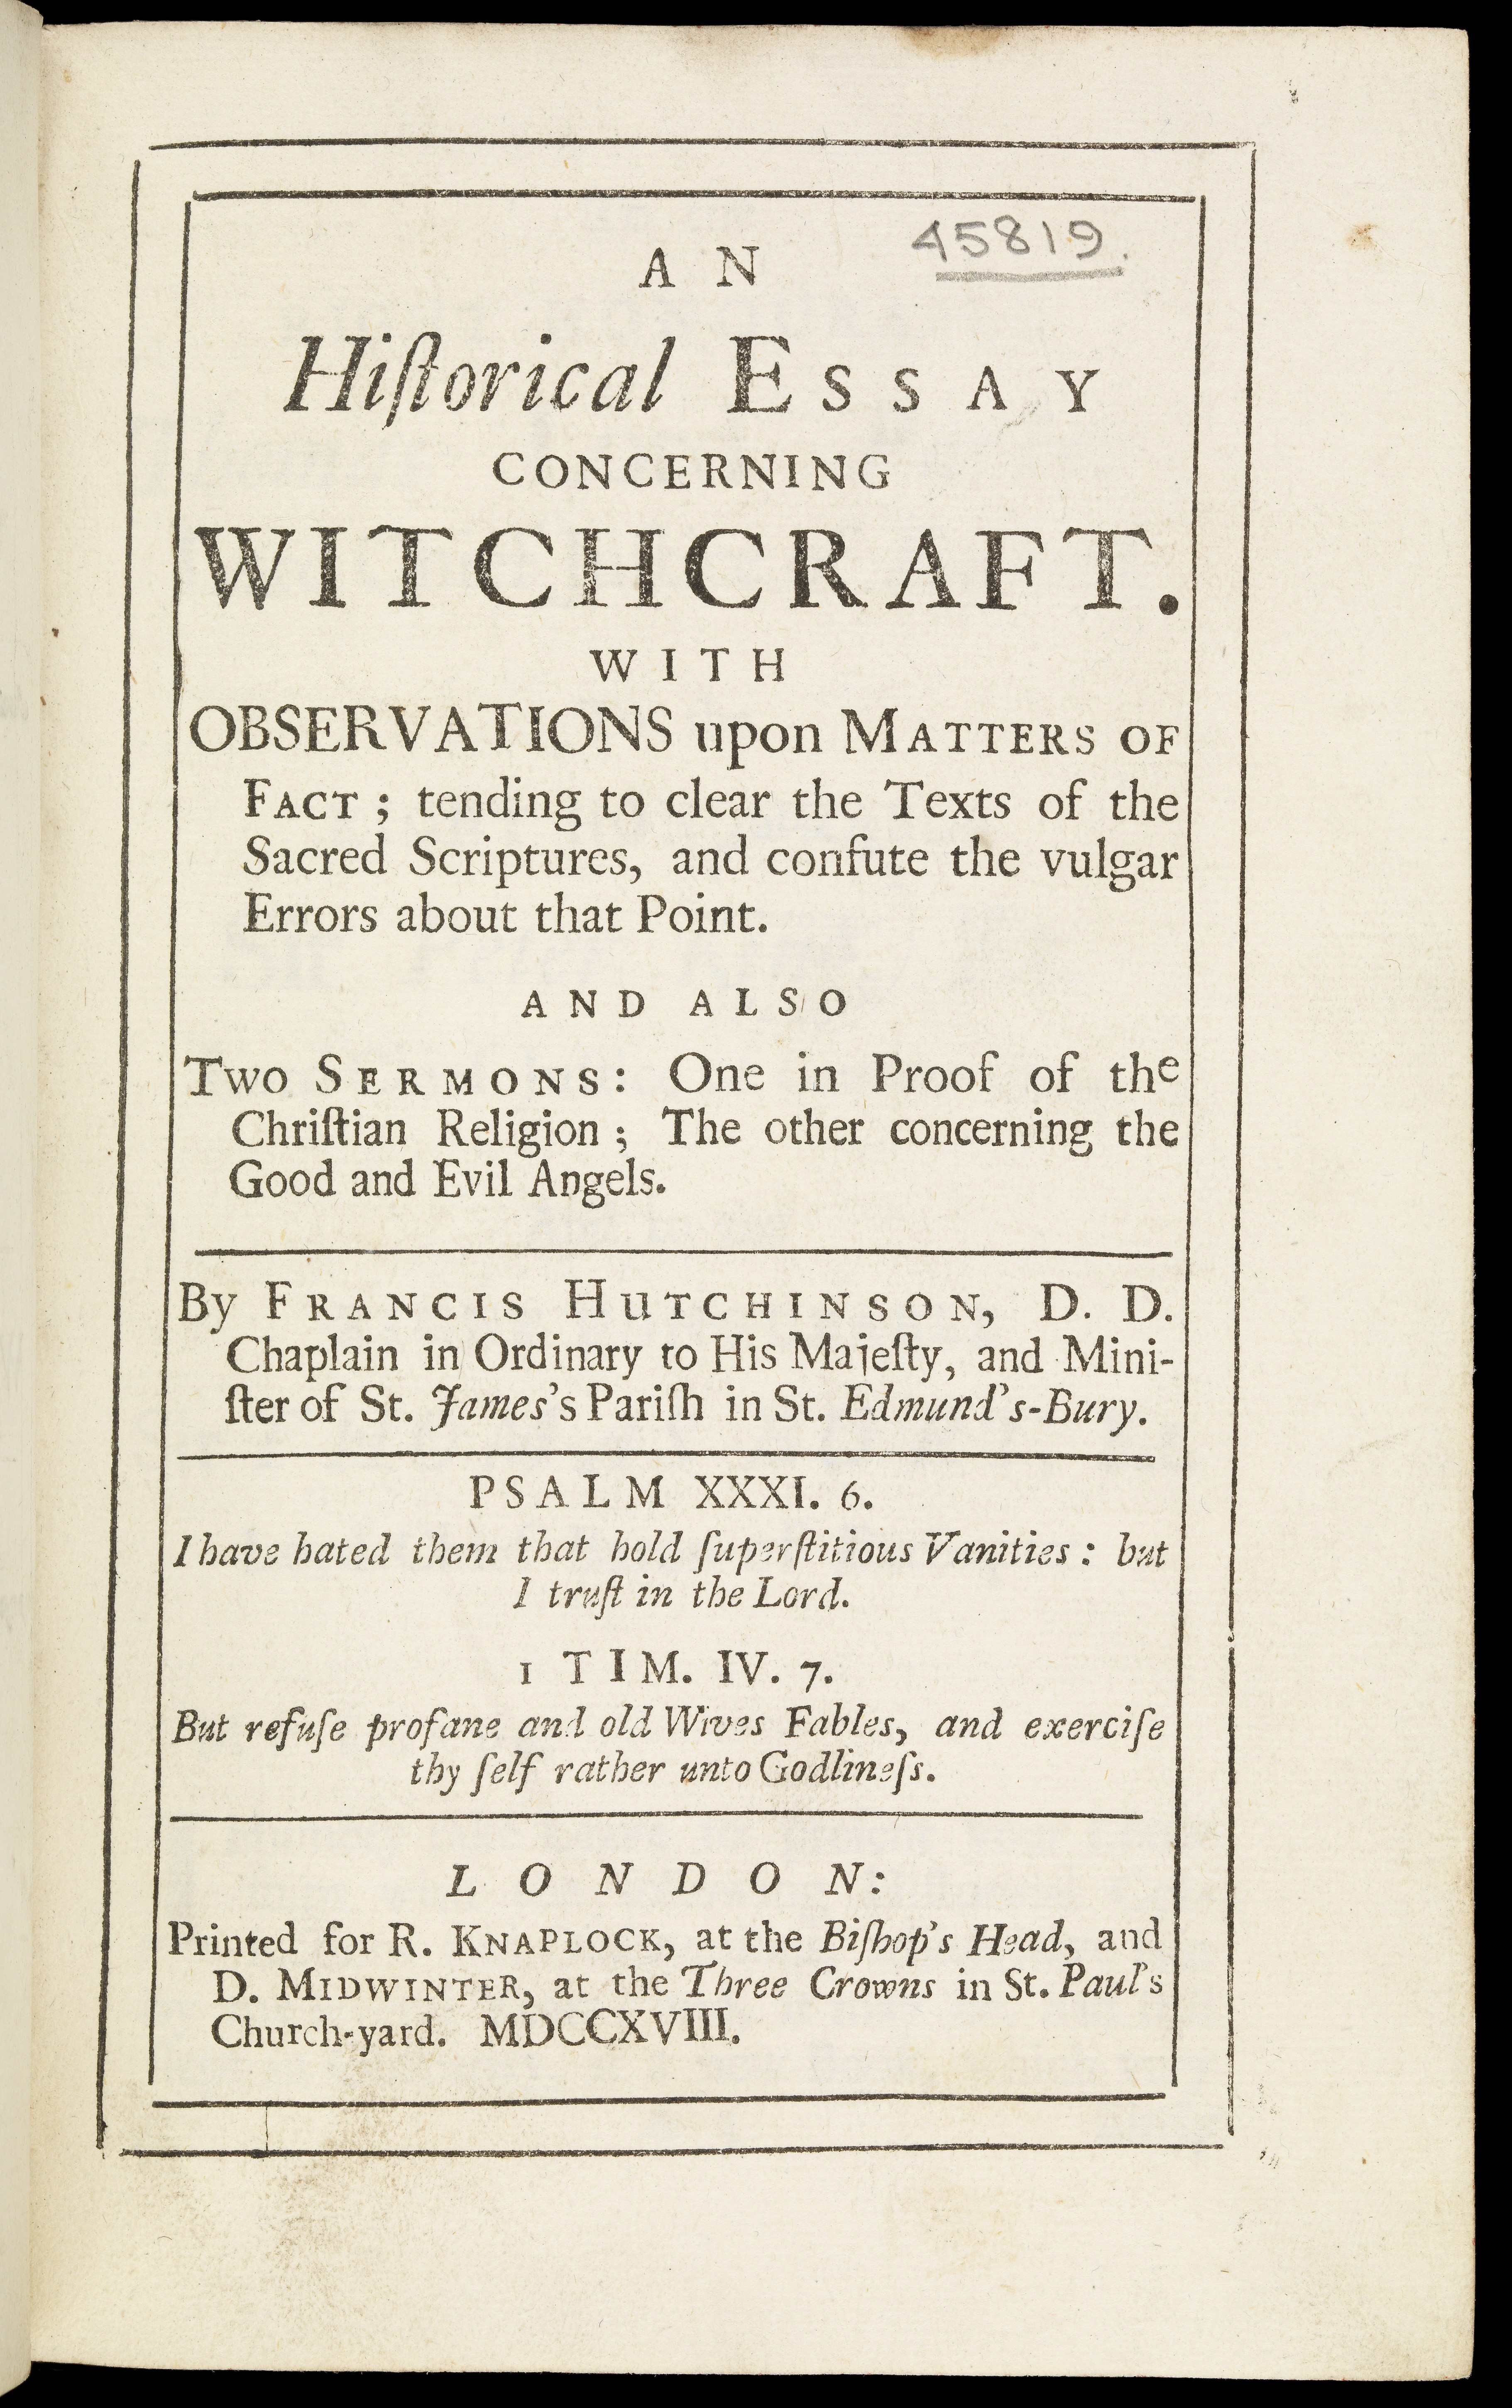 essay titles on witchcraft This is a case where people accused other people of witchcraft salem witch trials essay by lauren bradshaw november 23 in this essay.